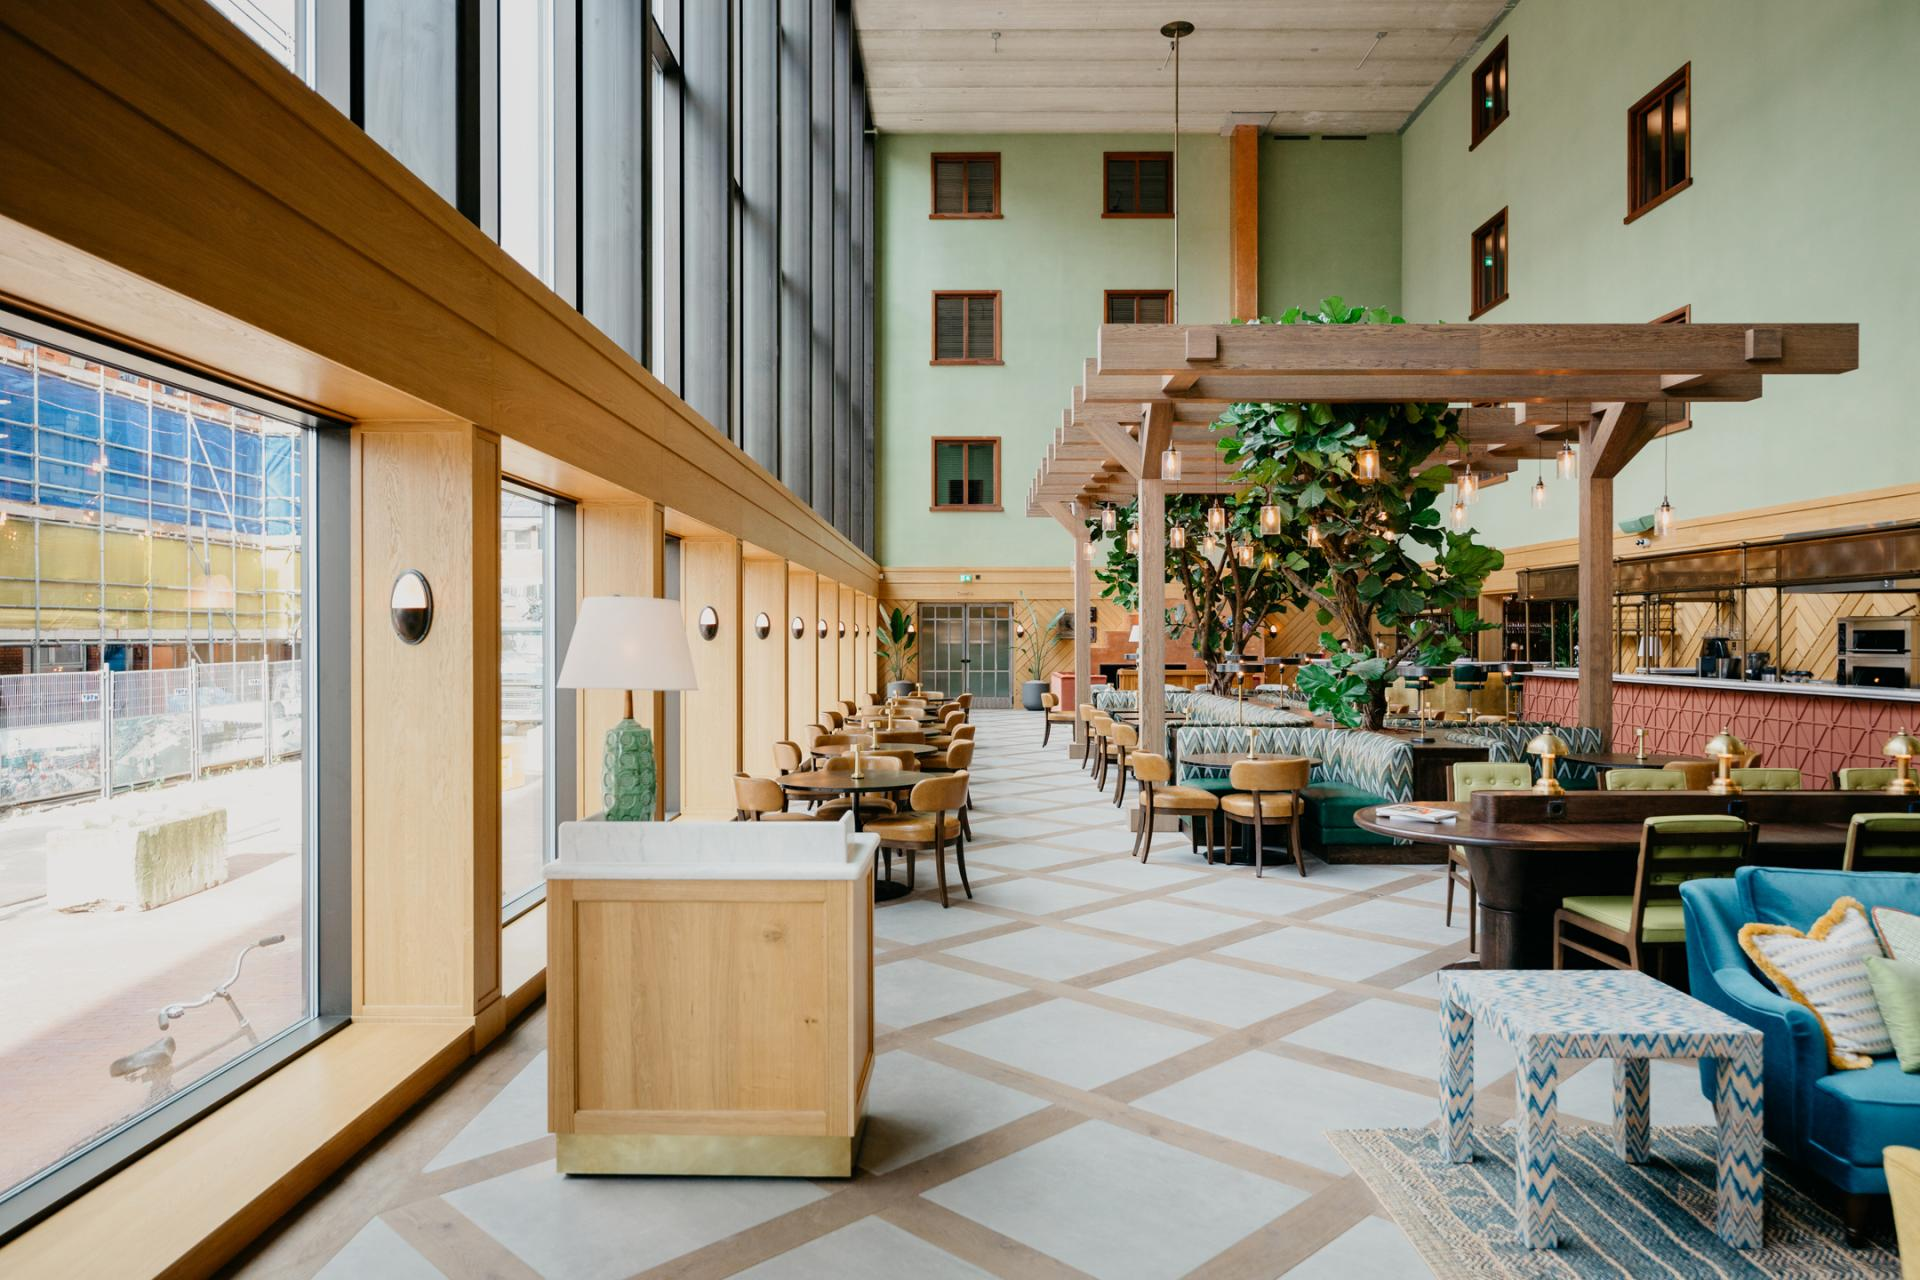 Atrium at Boat & Co Apartments, Houthavens, Amsterdam